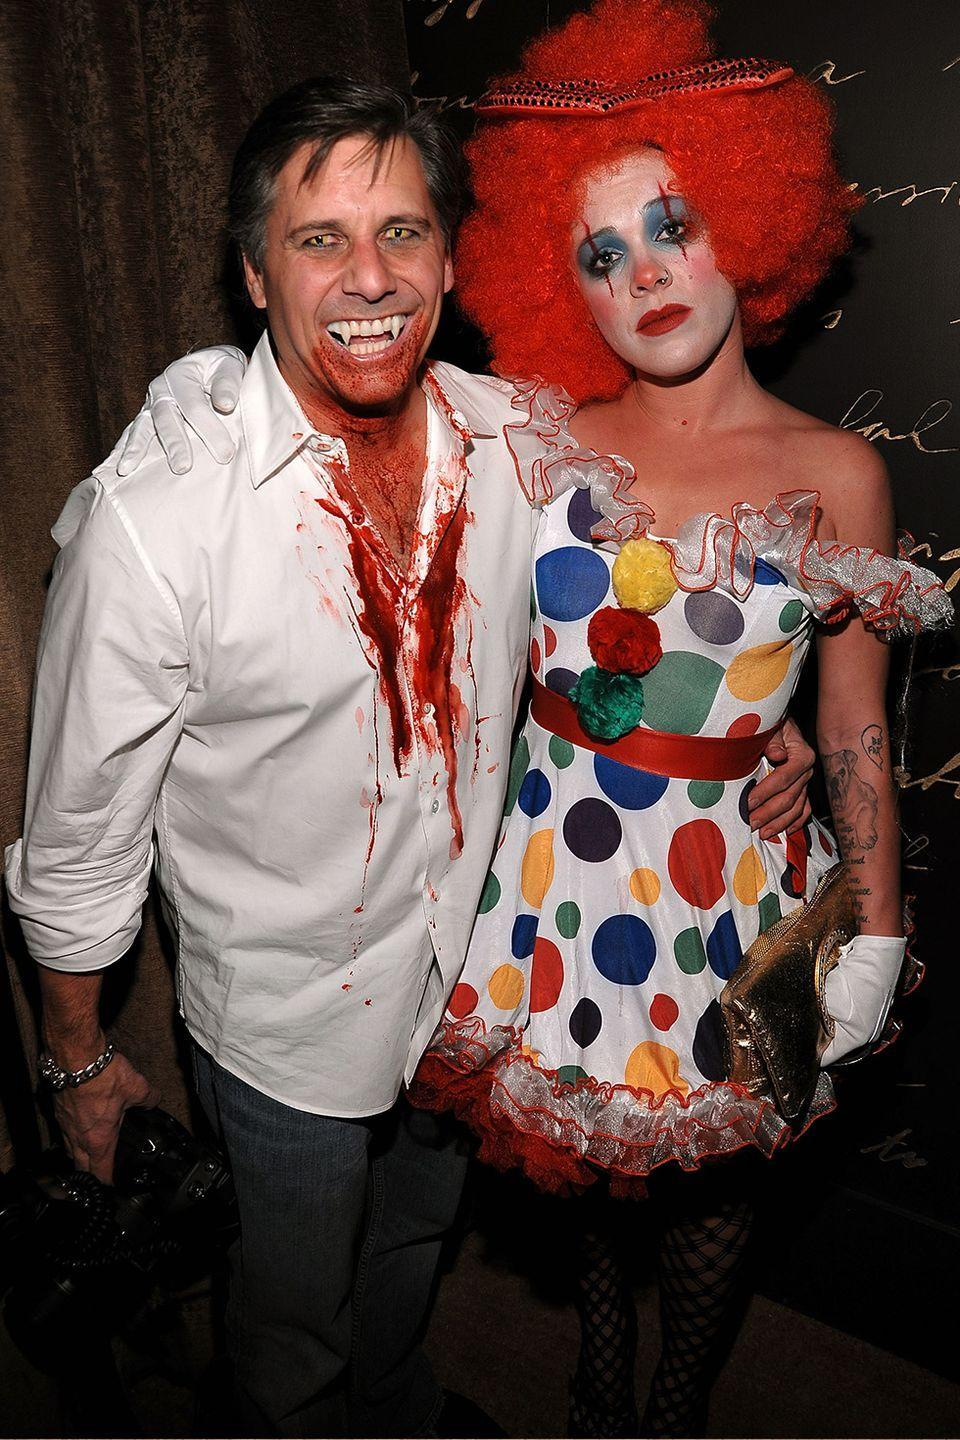 <p>Photographer Kevin Mazur and P!nk attended Heidi Klum's 2010 party as a creepy clown and vampire duo. I'm not quite sure how they go together, aside from the fact that the vamp could have drained the color from his clown's face.</p>